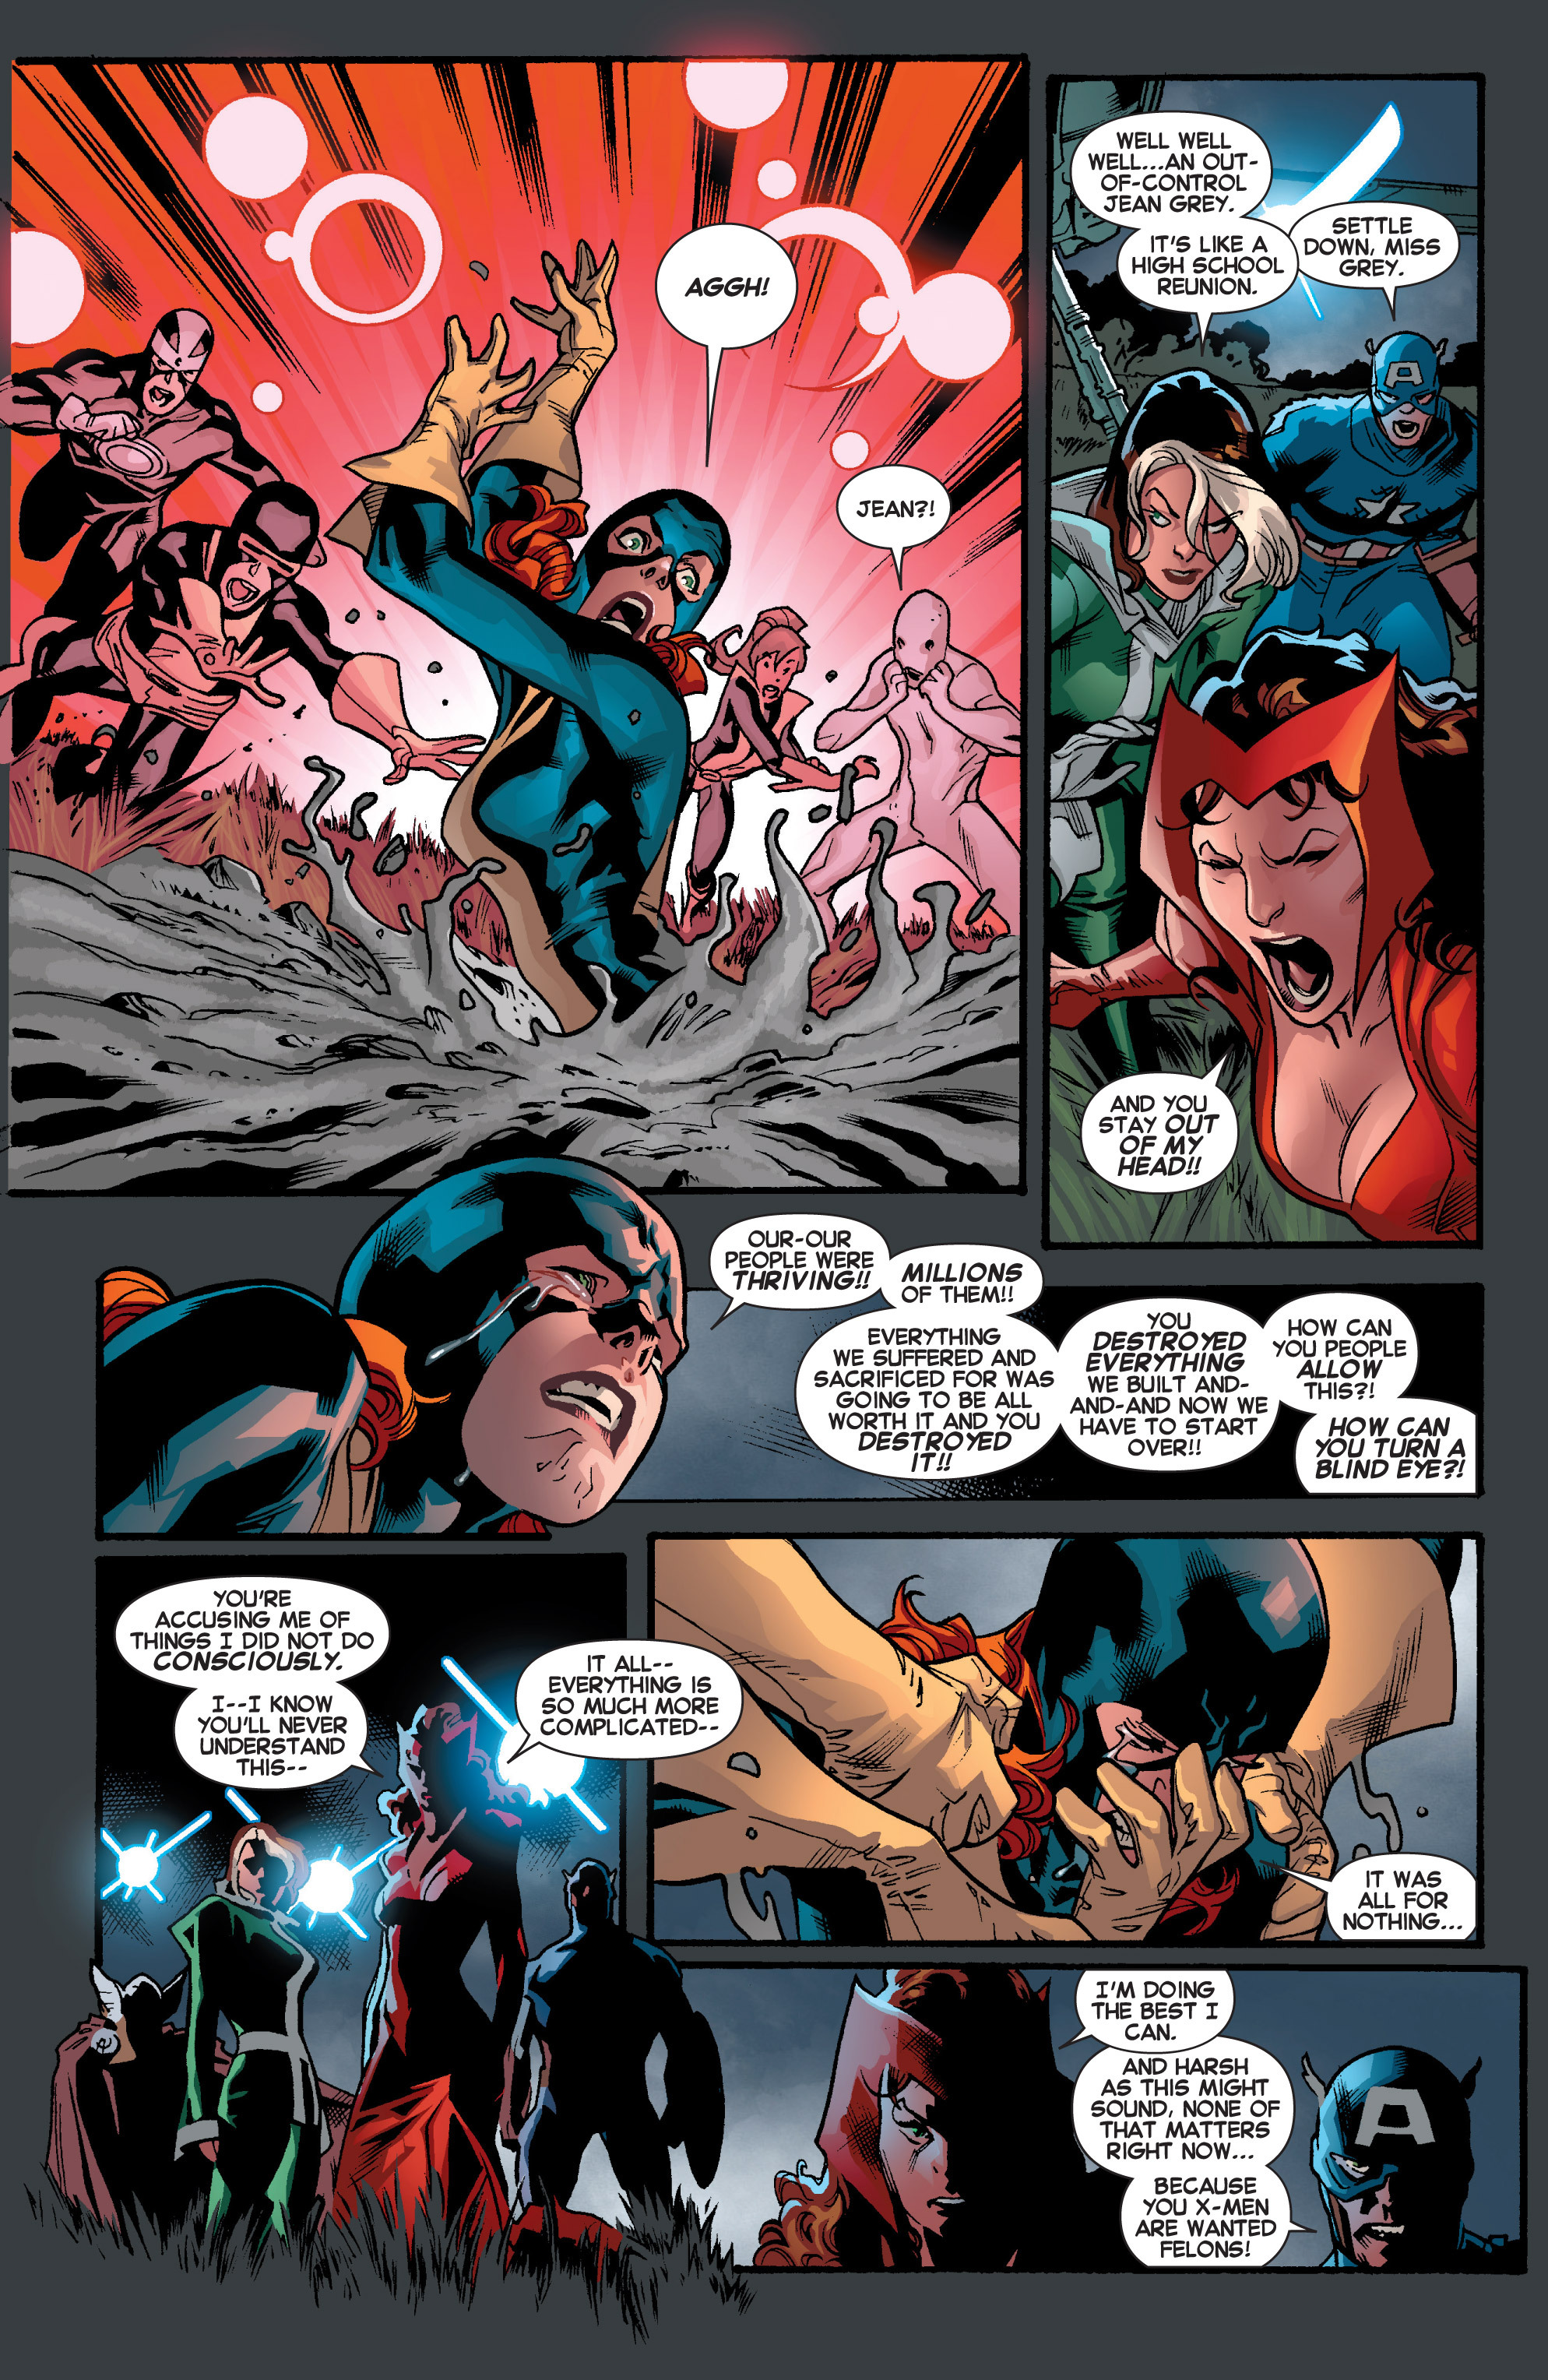 Read online All-New X-Men (2013) comic -  Issue # _Special - Out Of Their Depth - 35